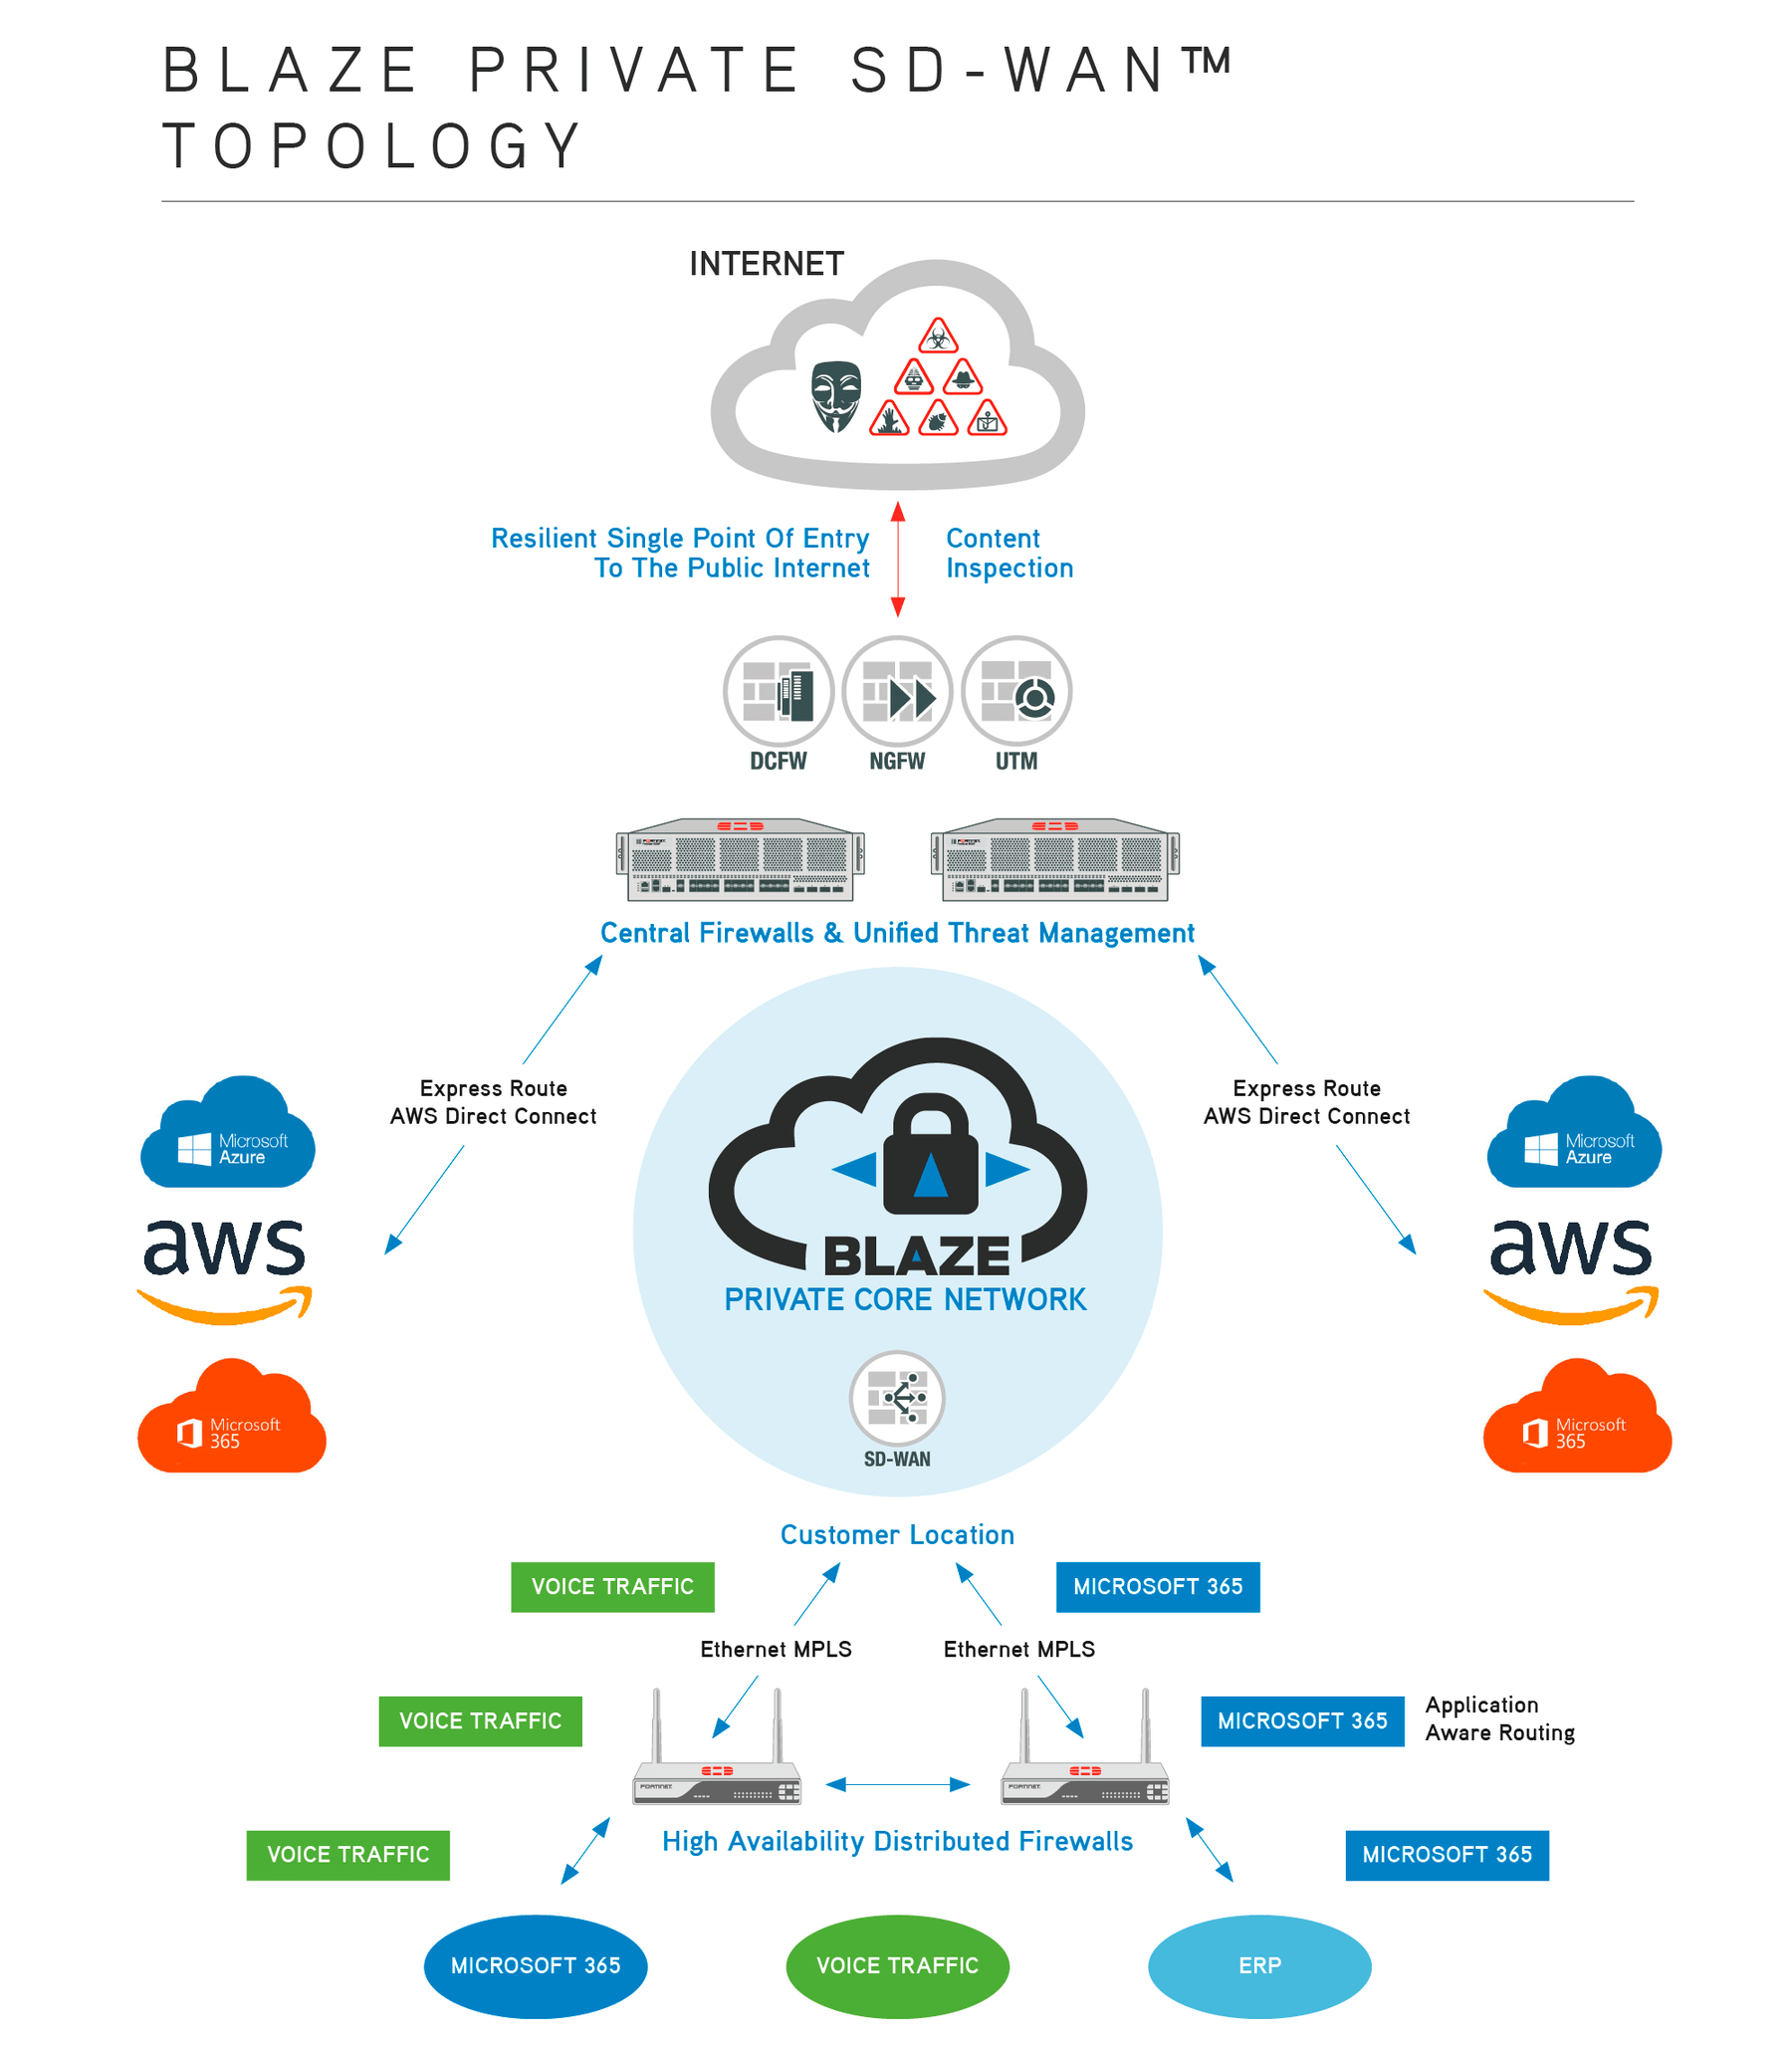 Blaze Private SD_WAN topology diagram